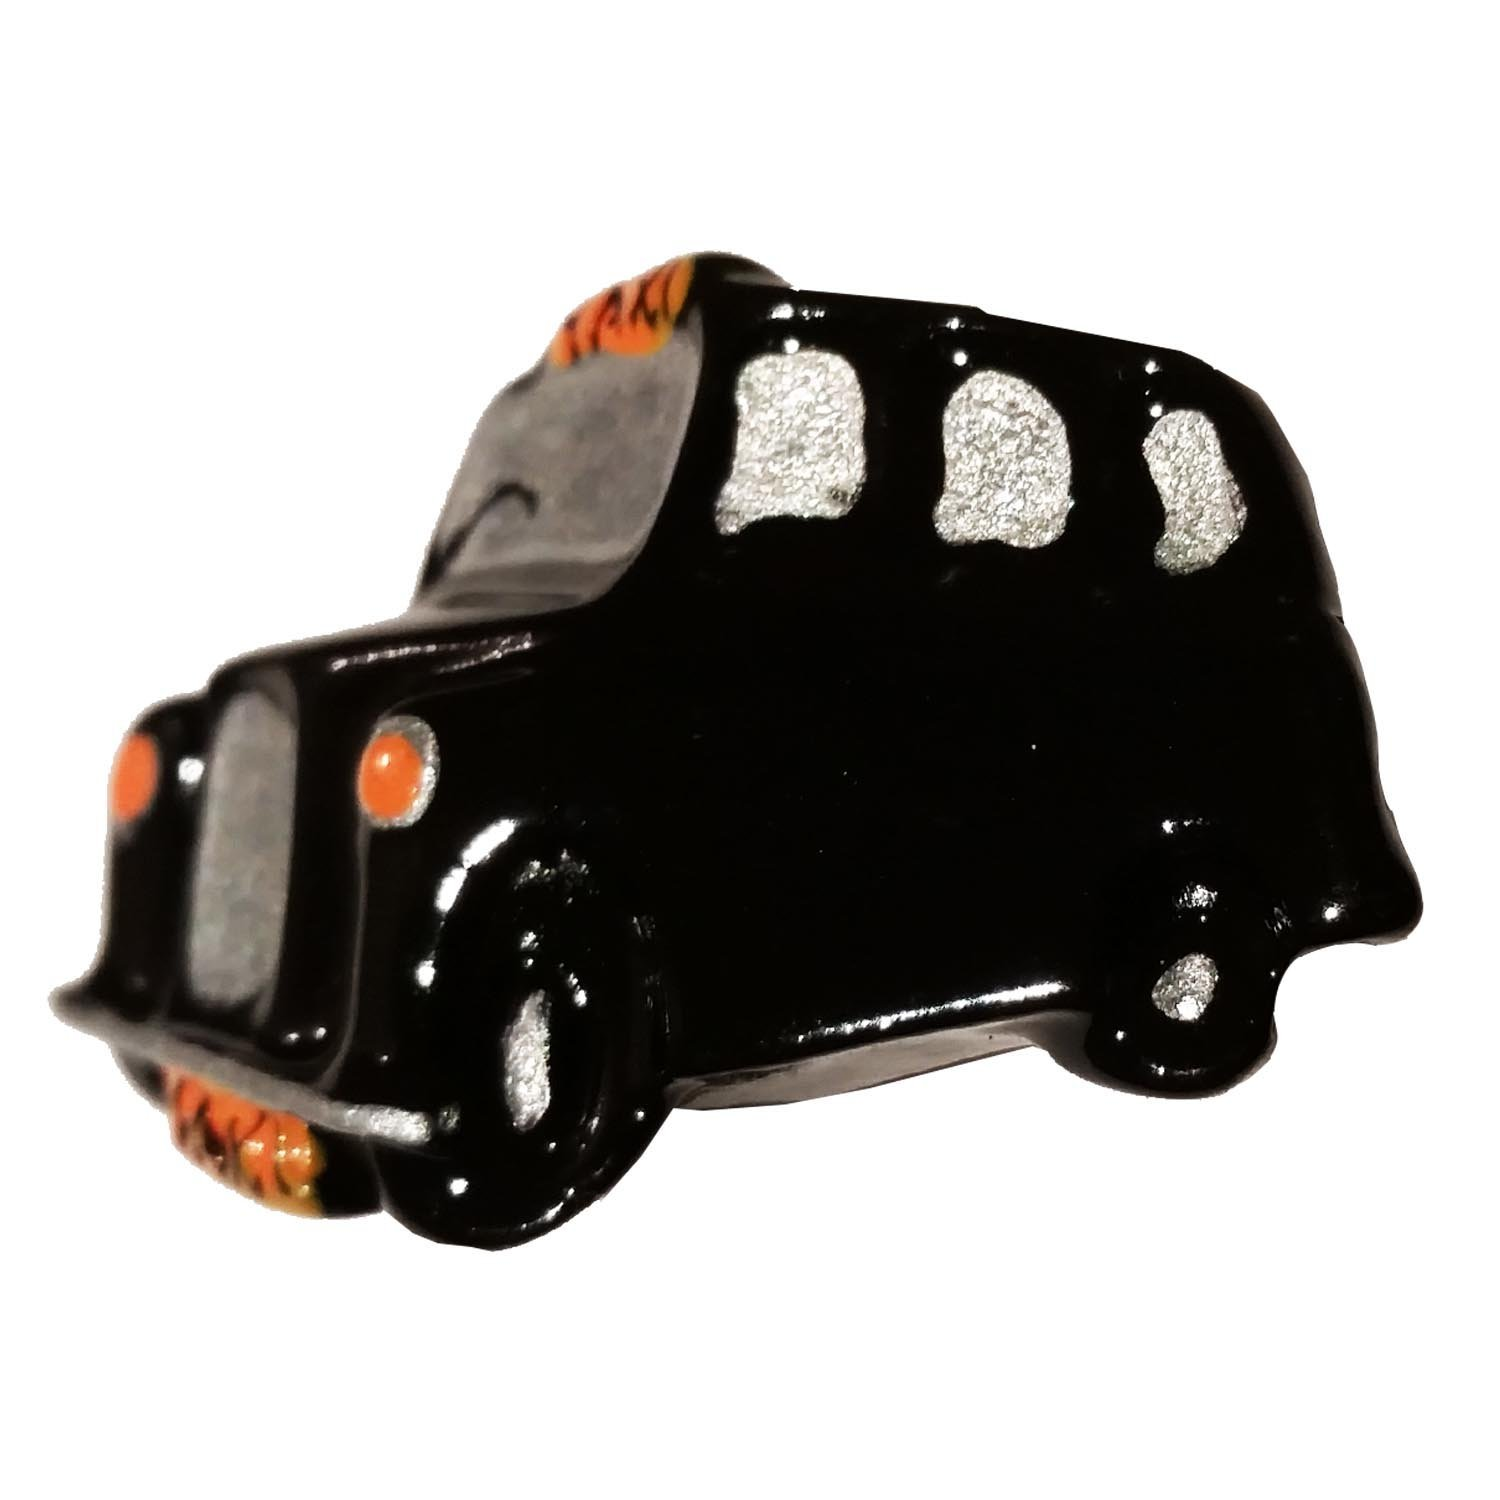 LONDON TAXI BLACK CAB ENAMEL LAPEL PIN BADGE